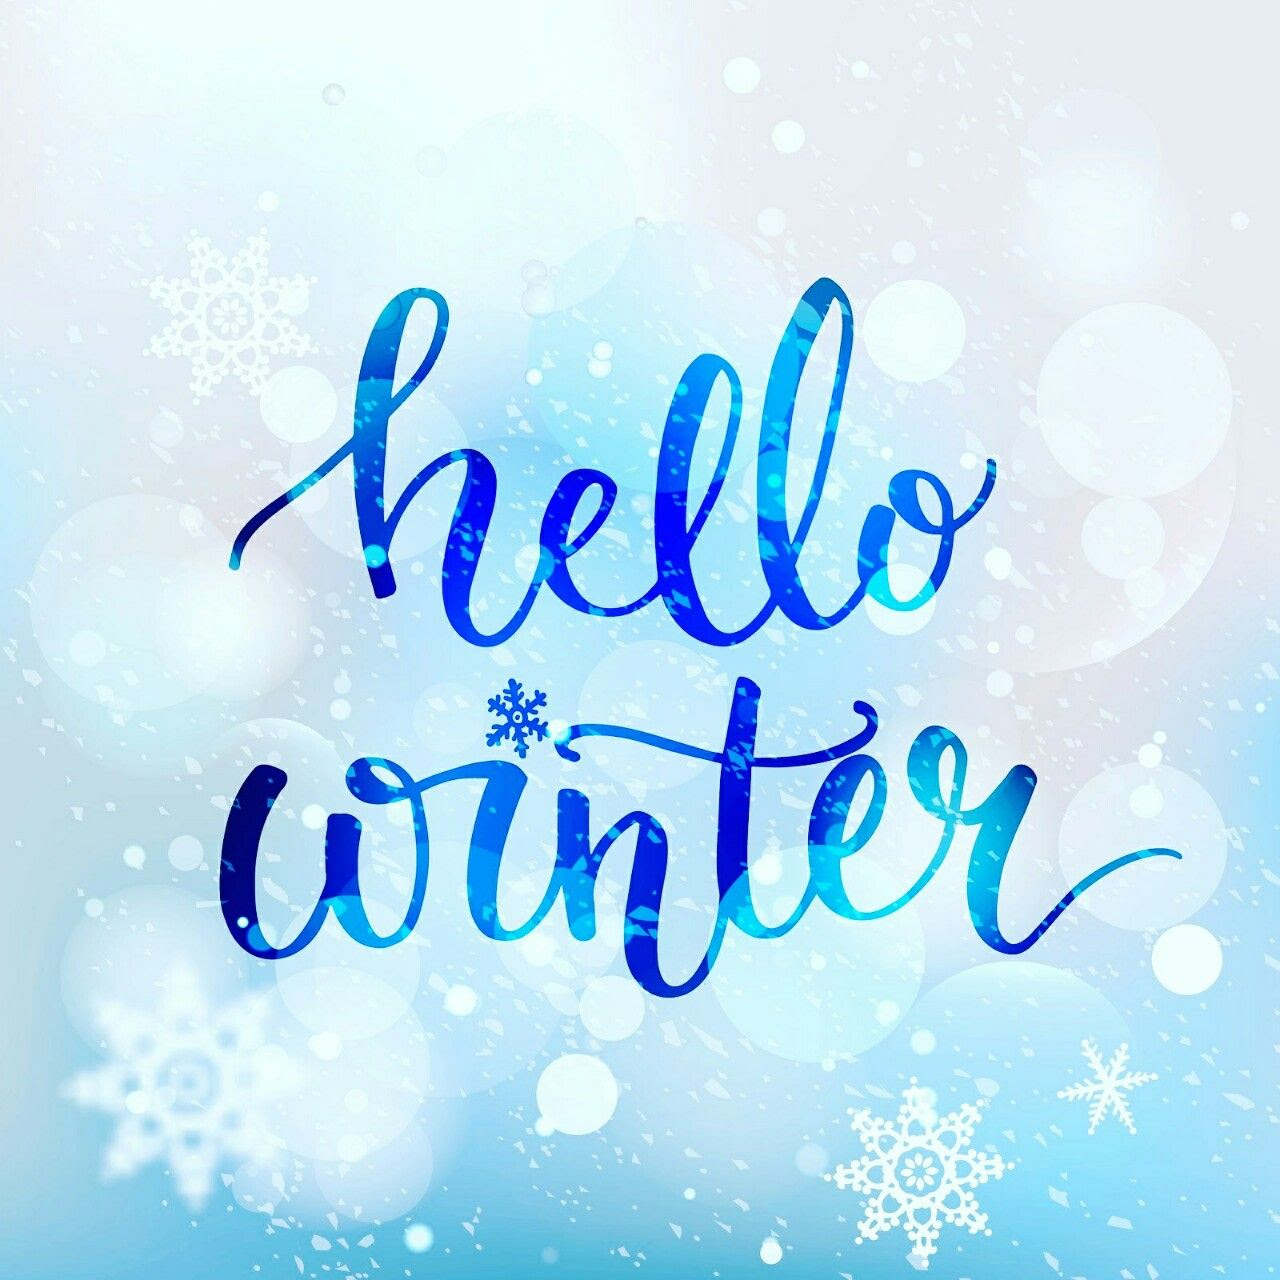 Image result for Happy Winter Solstice free image